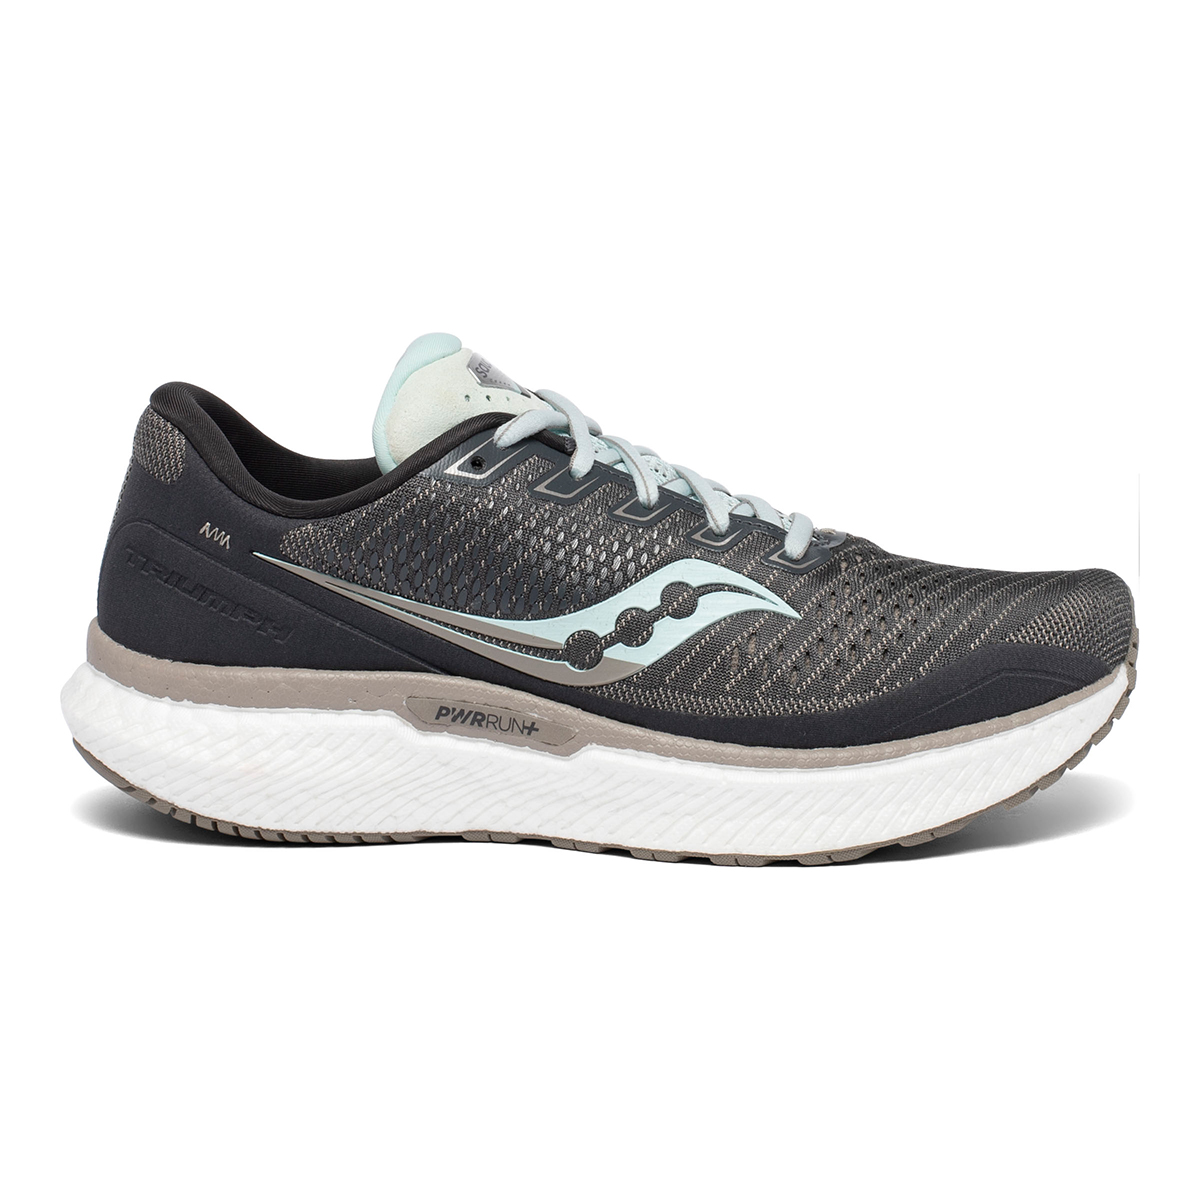 Women's Saucony Triumph 18 Running Shoe - Color: Black/Charcoal - Size: 5 - Width: Regular, Black/Charcoal, large, image 1